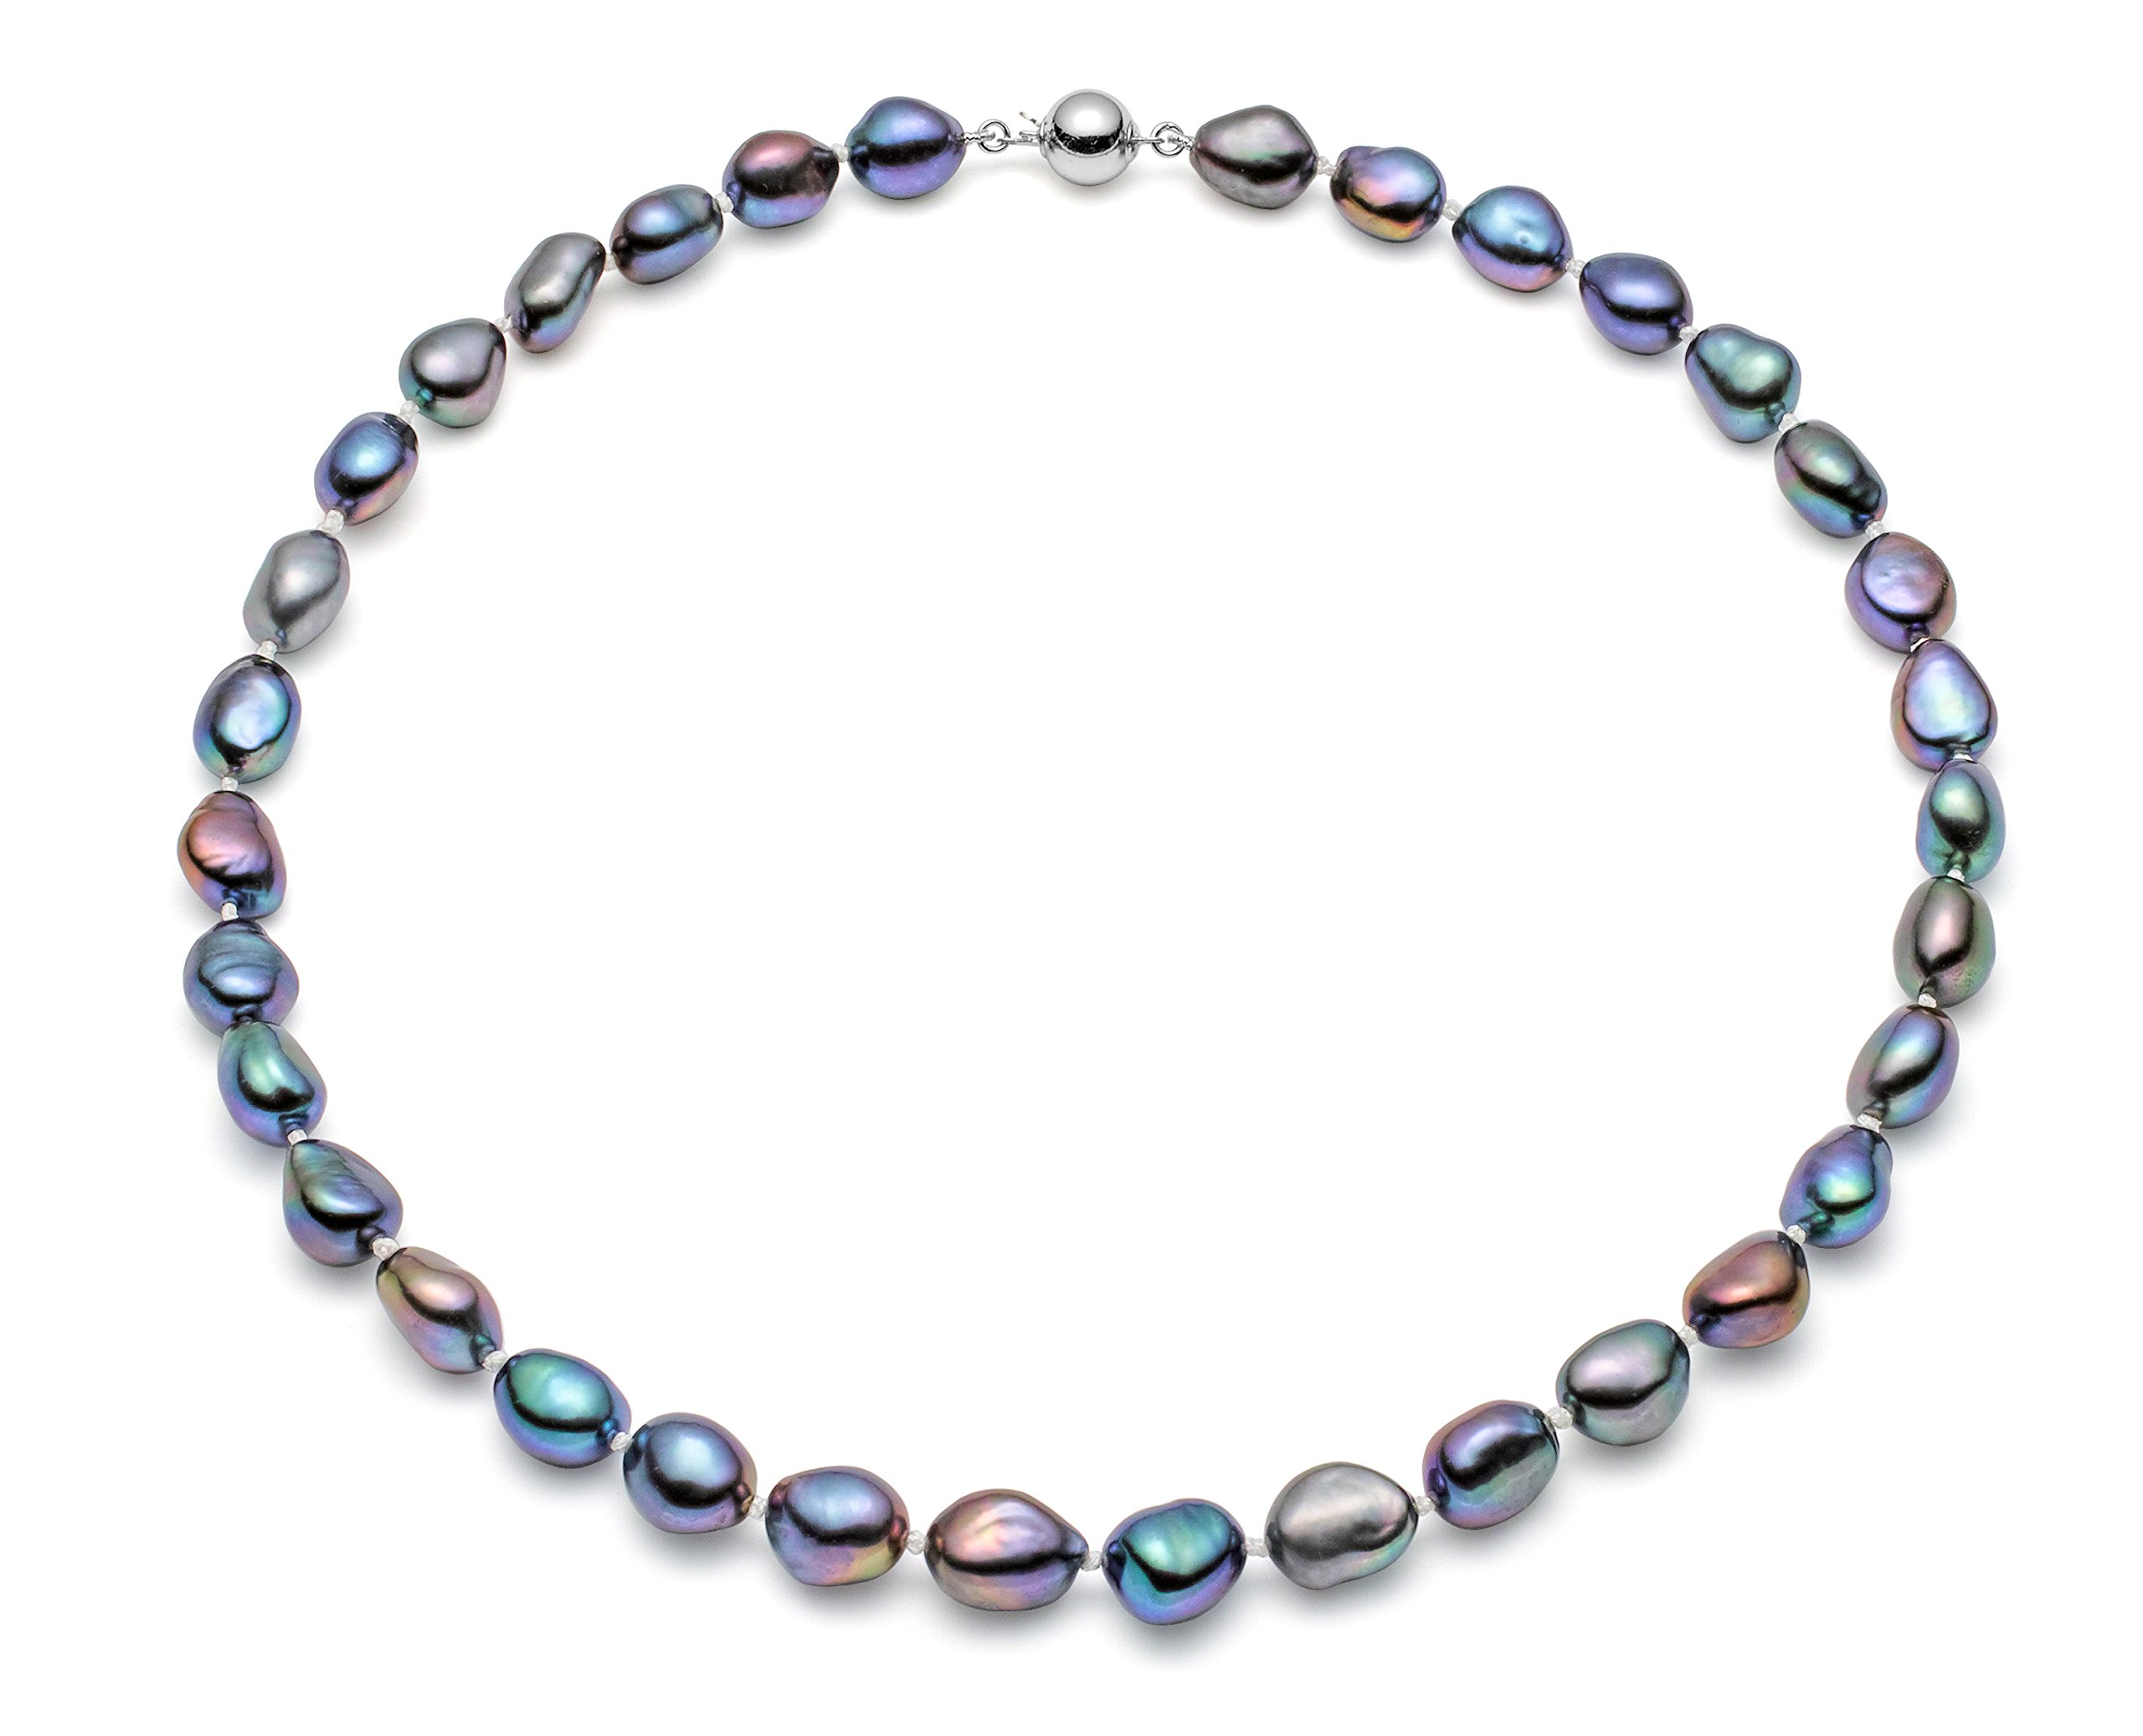 HinsonGayle AAA Handpicked 10-11mm Baroque Freshwater Cultured Pearl Necklace (Silver 18'')